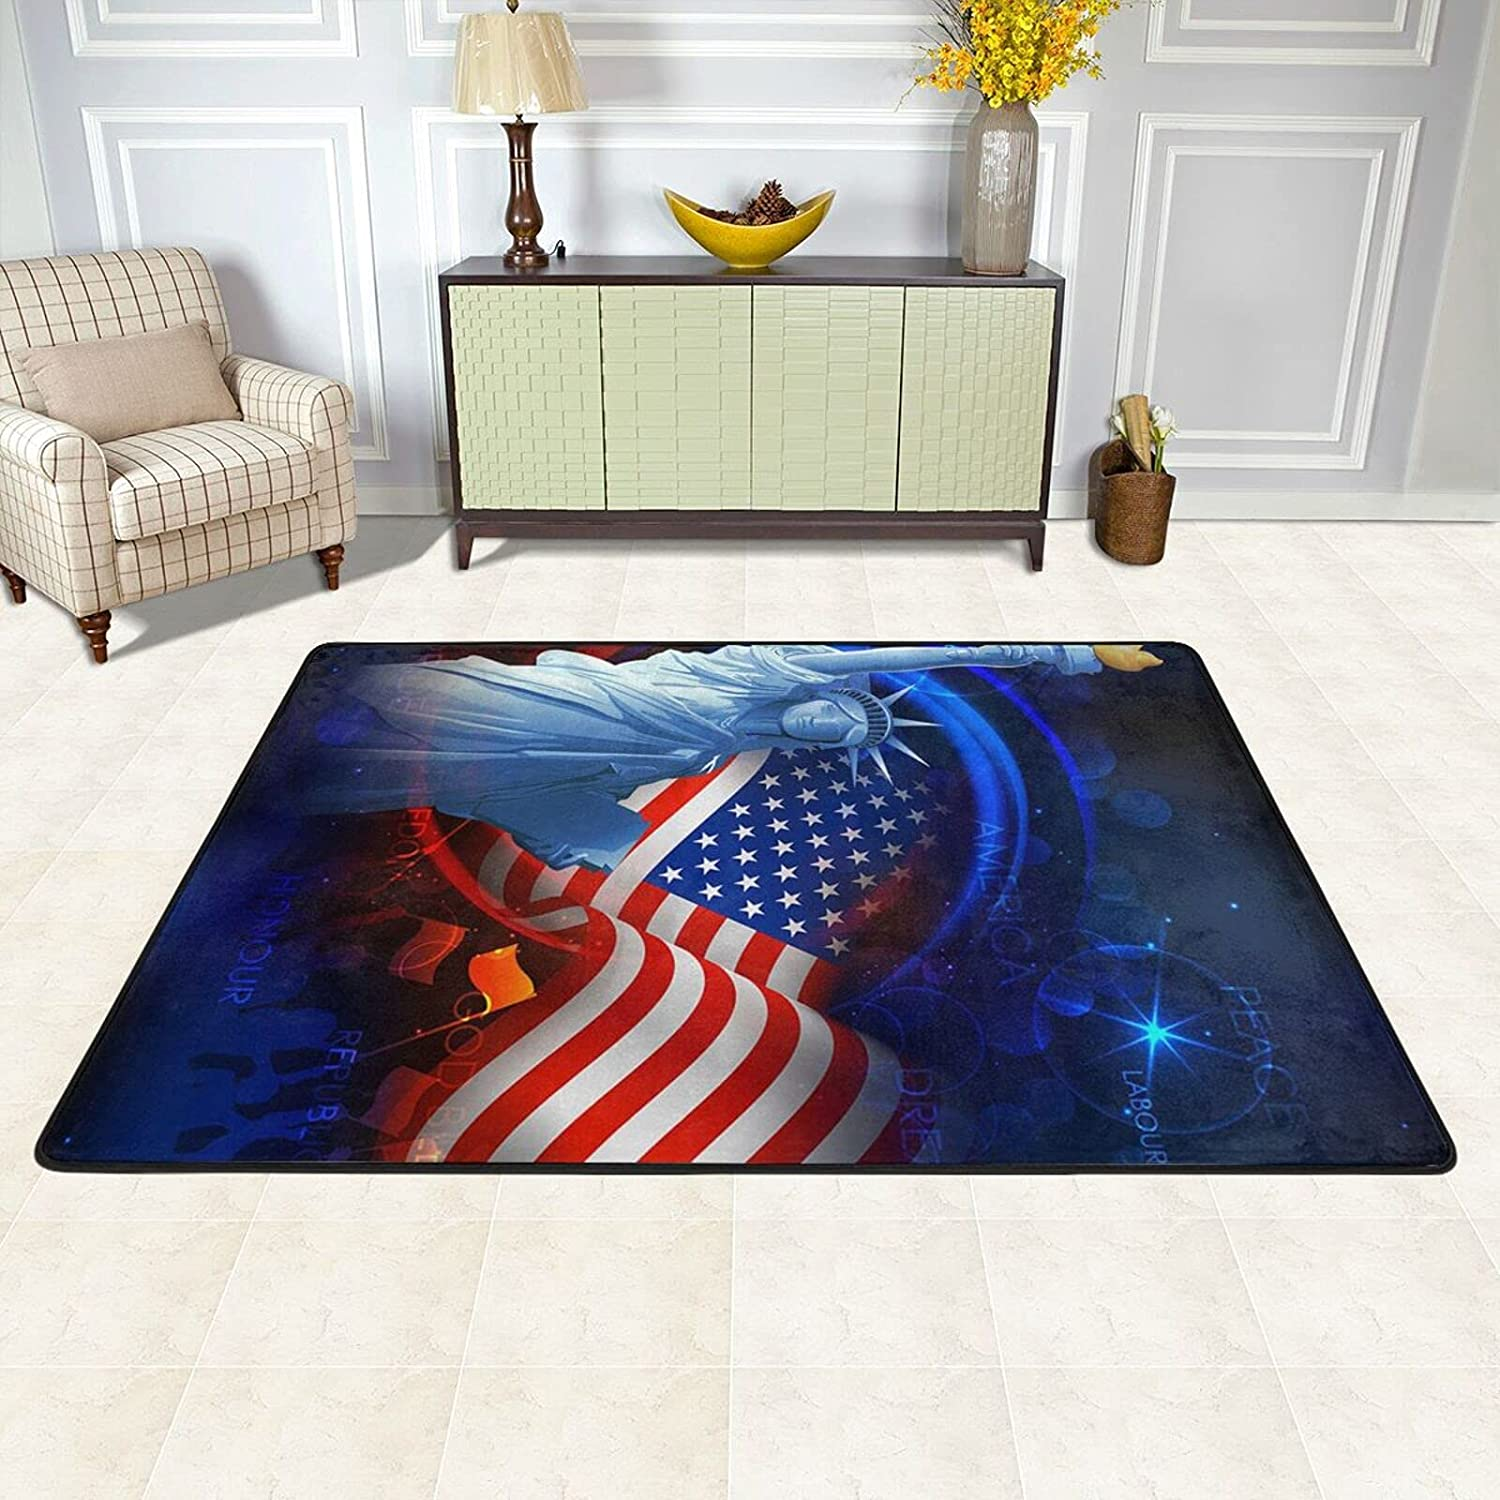 ZHUBAJIE Area Rugs Pad for Bedroom Statue-Liberty Living Popular brand in the world depot Am Room